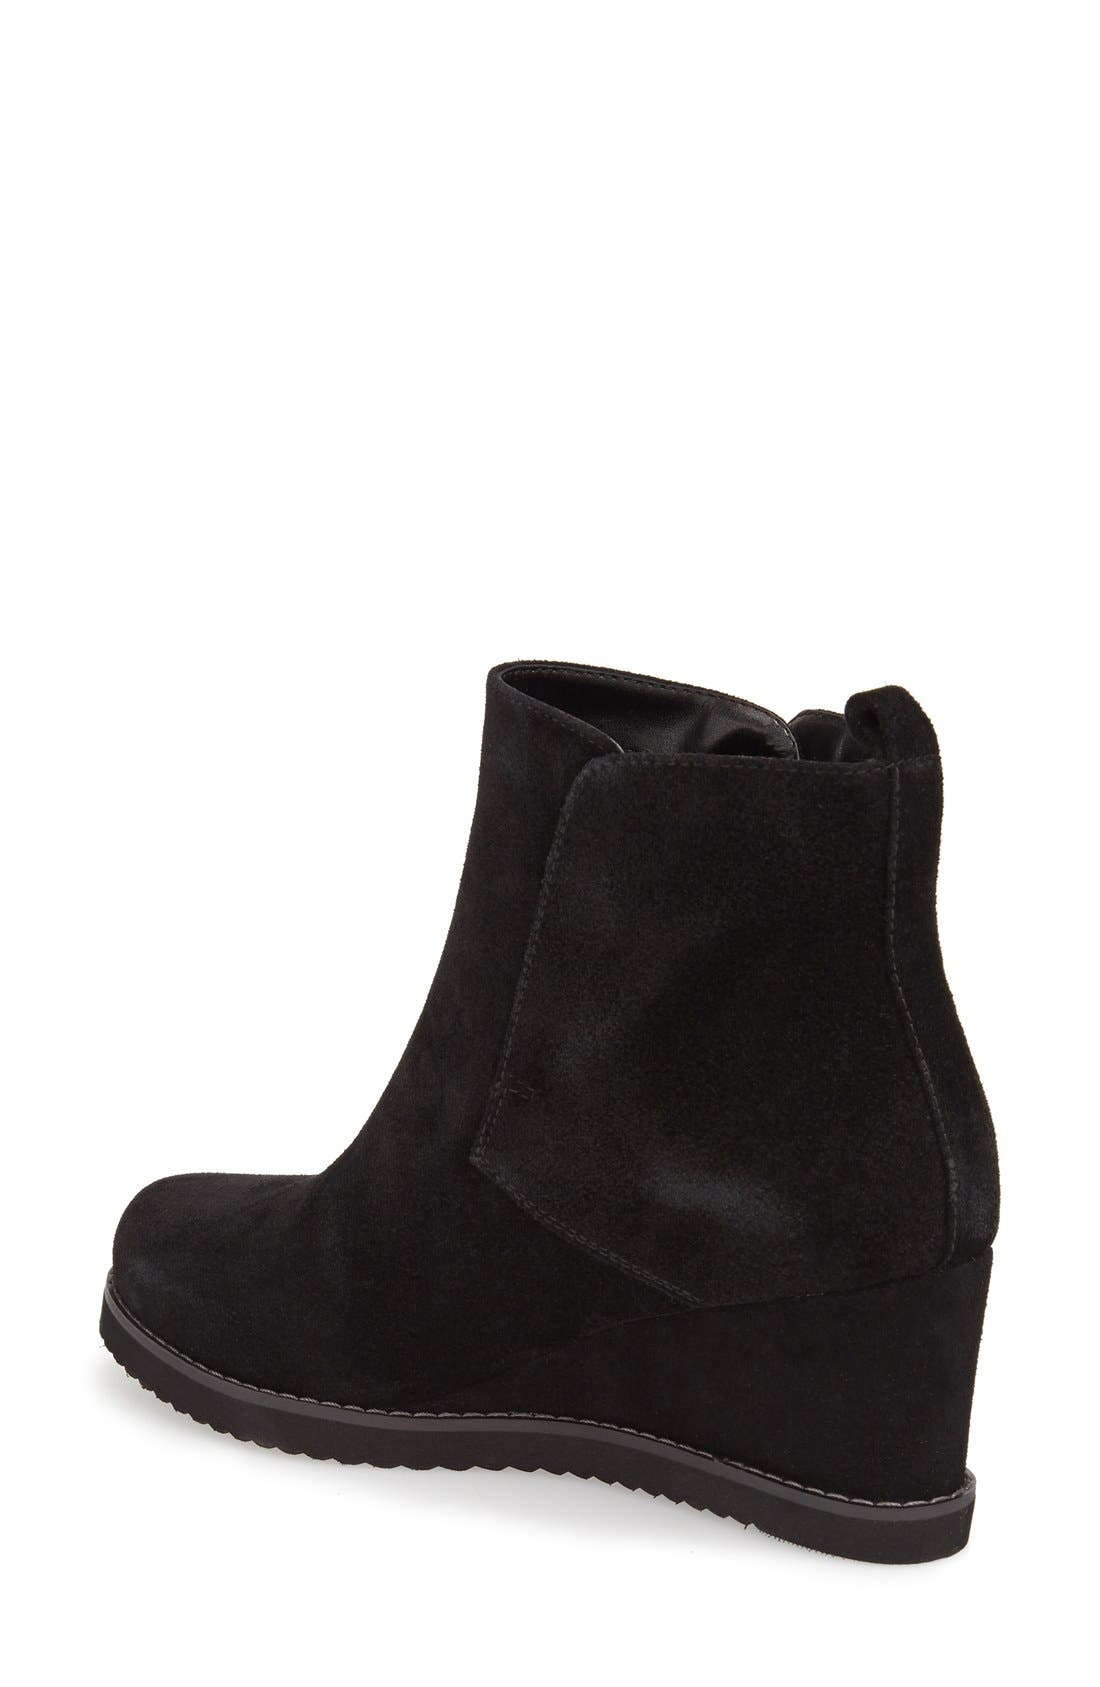 'Karla' Waterproof Wedge Bootie,                             Alternate thumbnail 4, color,